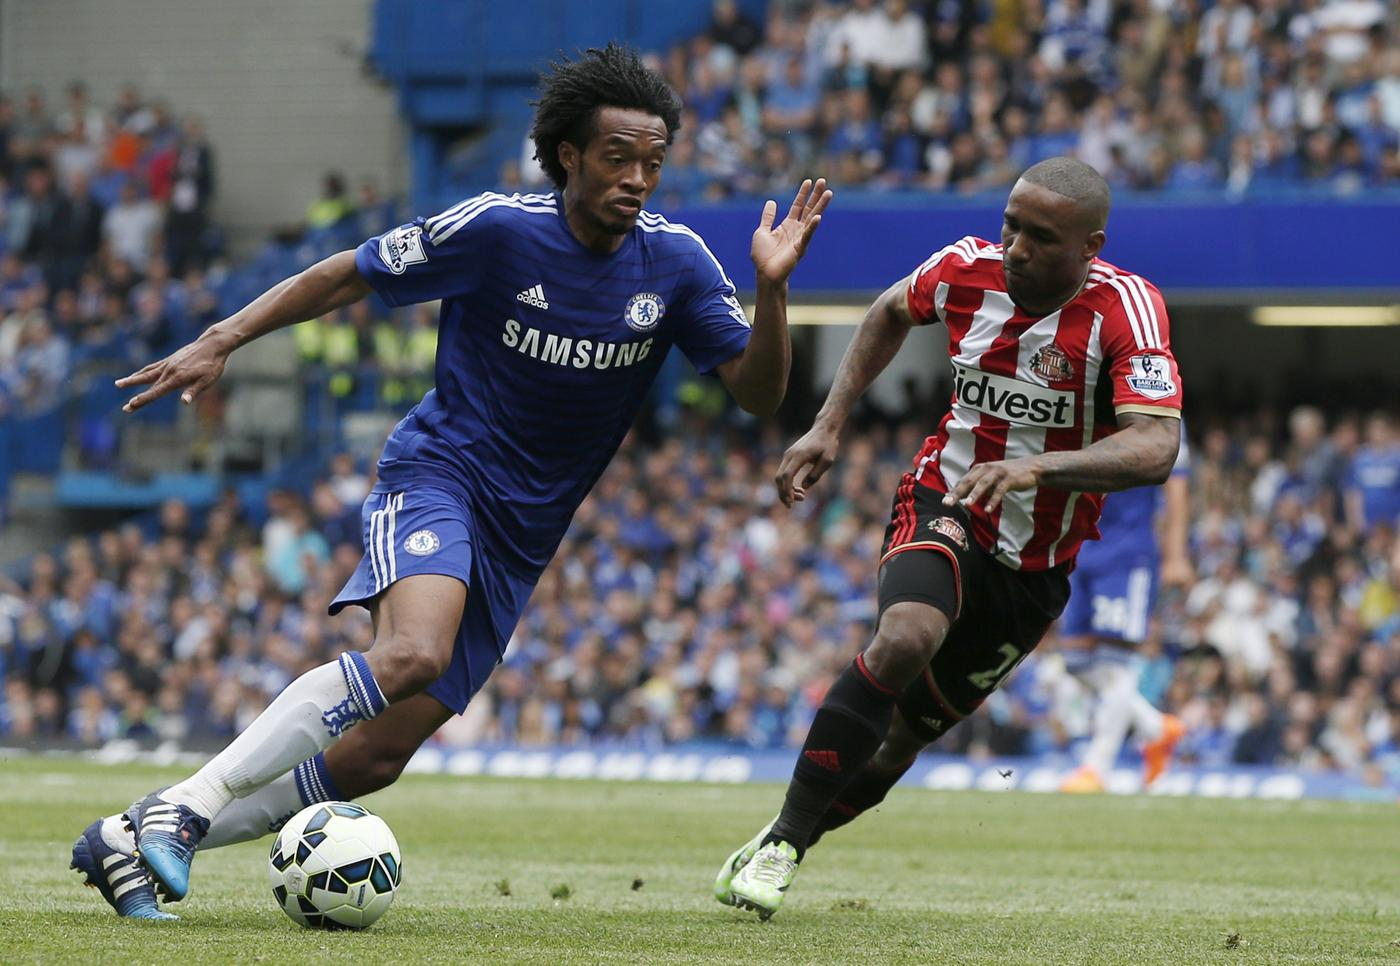 Could Chelsea transfer flop Juan Cuadrado could be set for sensational return to Italy?